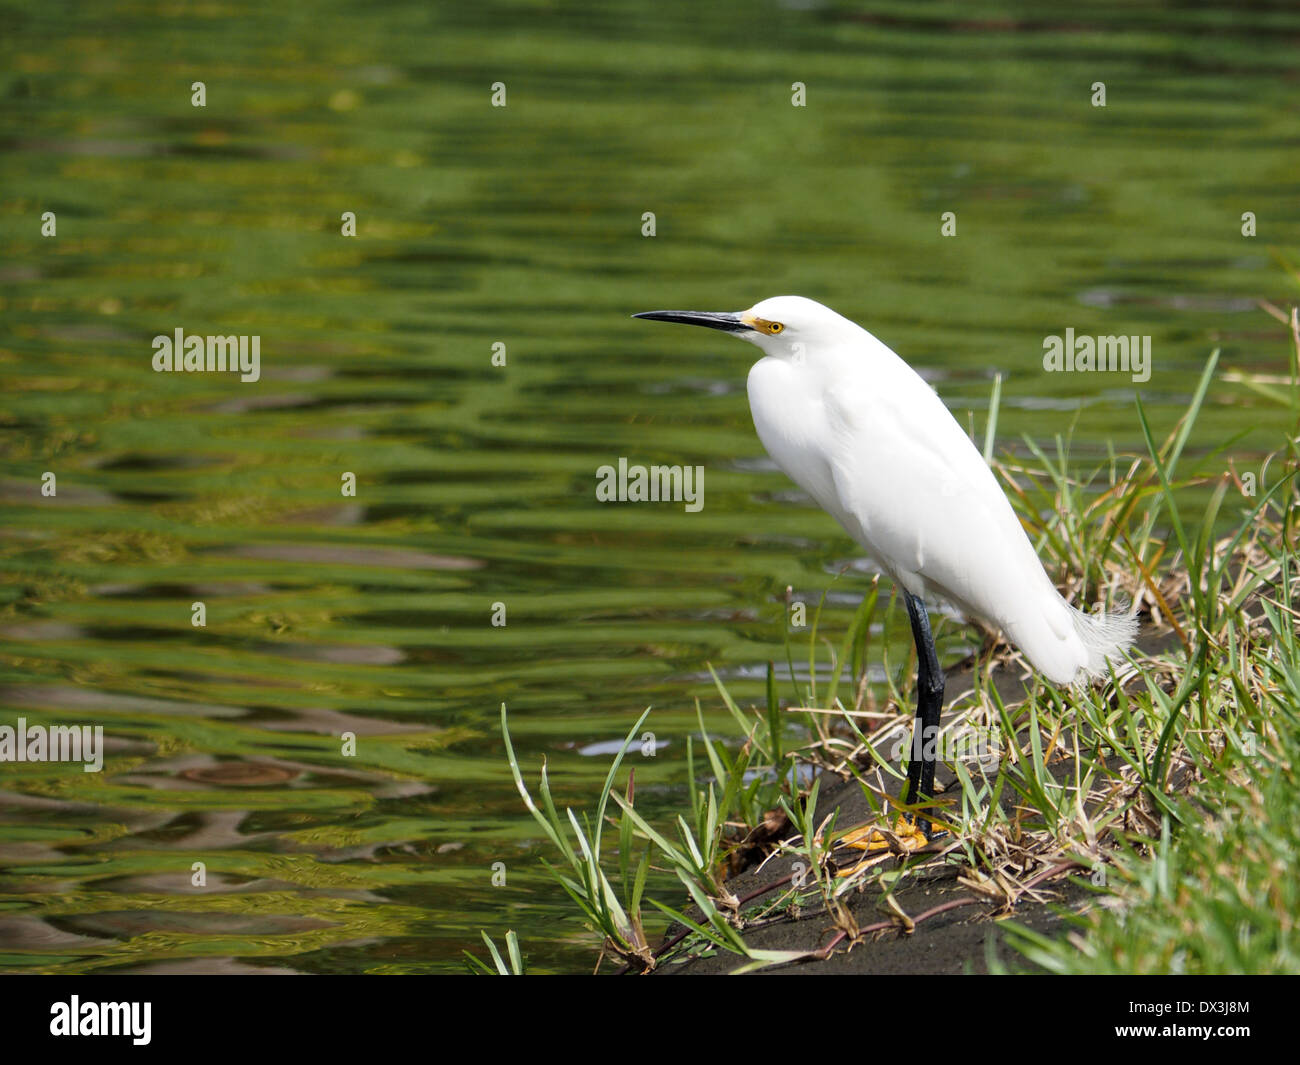 Snowy Egret with head tilted to side, standing by a lake. - Stock Image